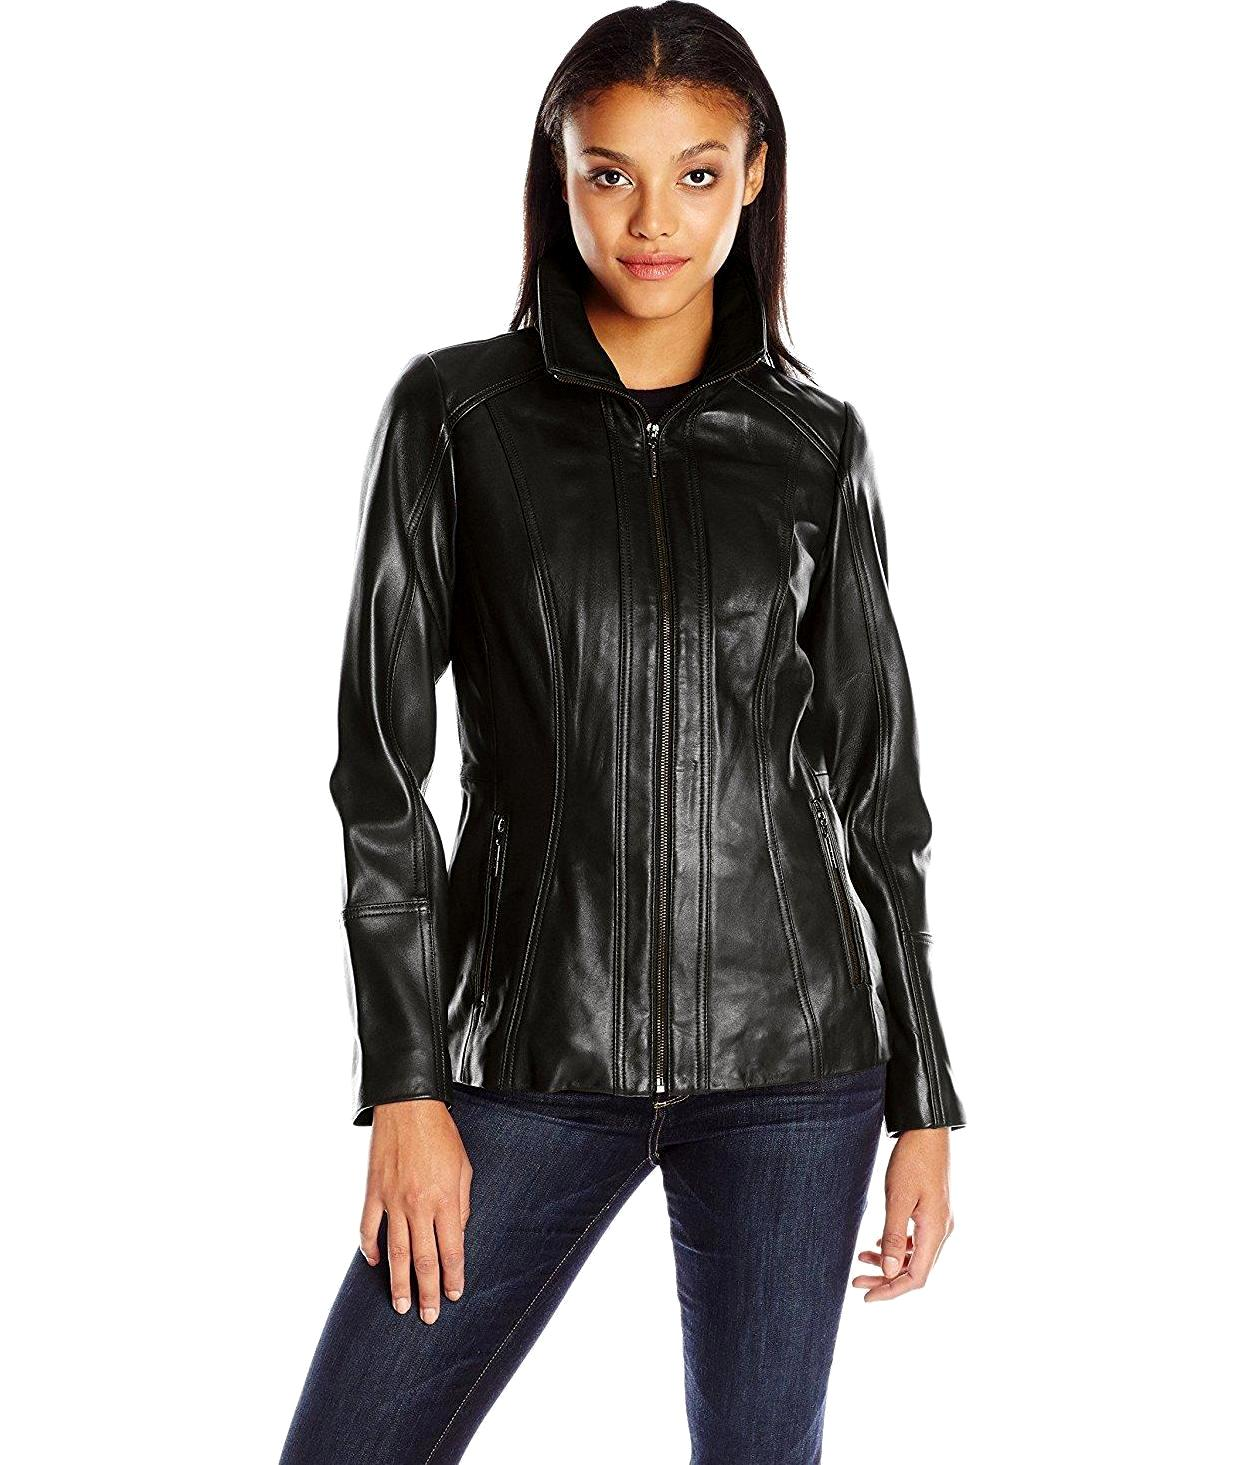 4918f6e02 Anne Klein Women's Zip Front Leather Jacket with Convertible Collar in Black